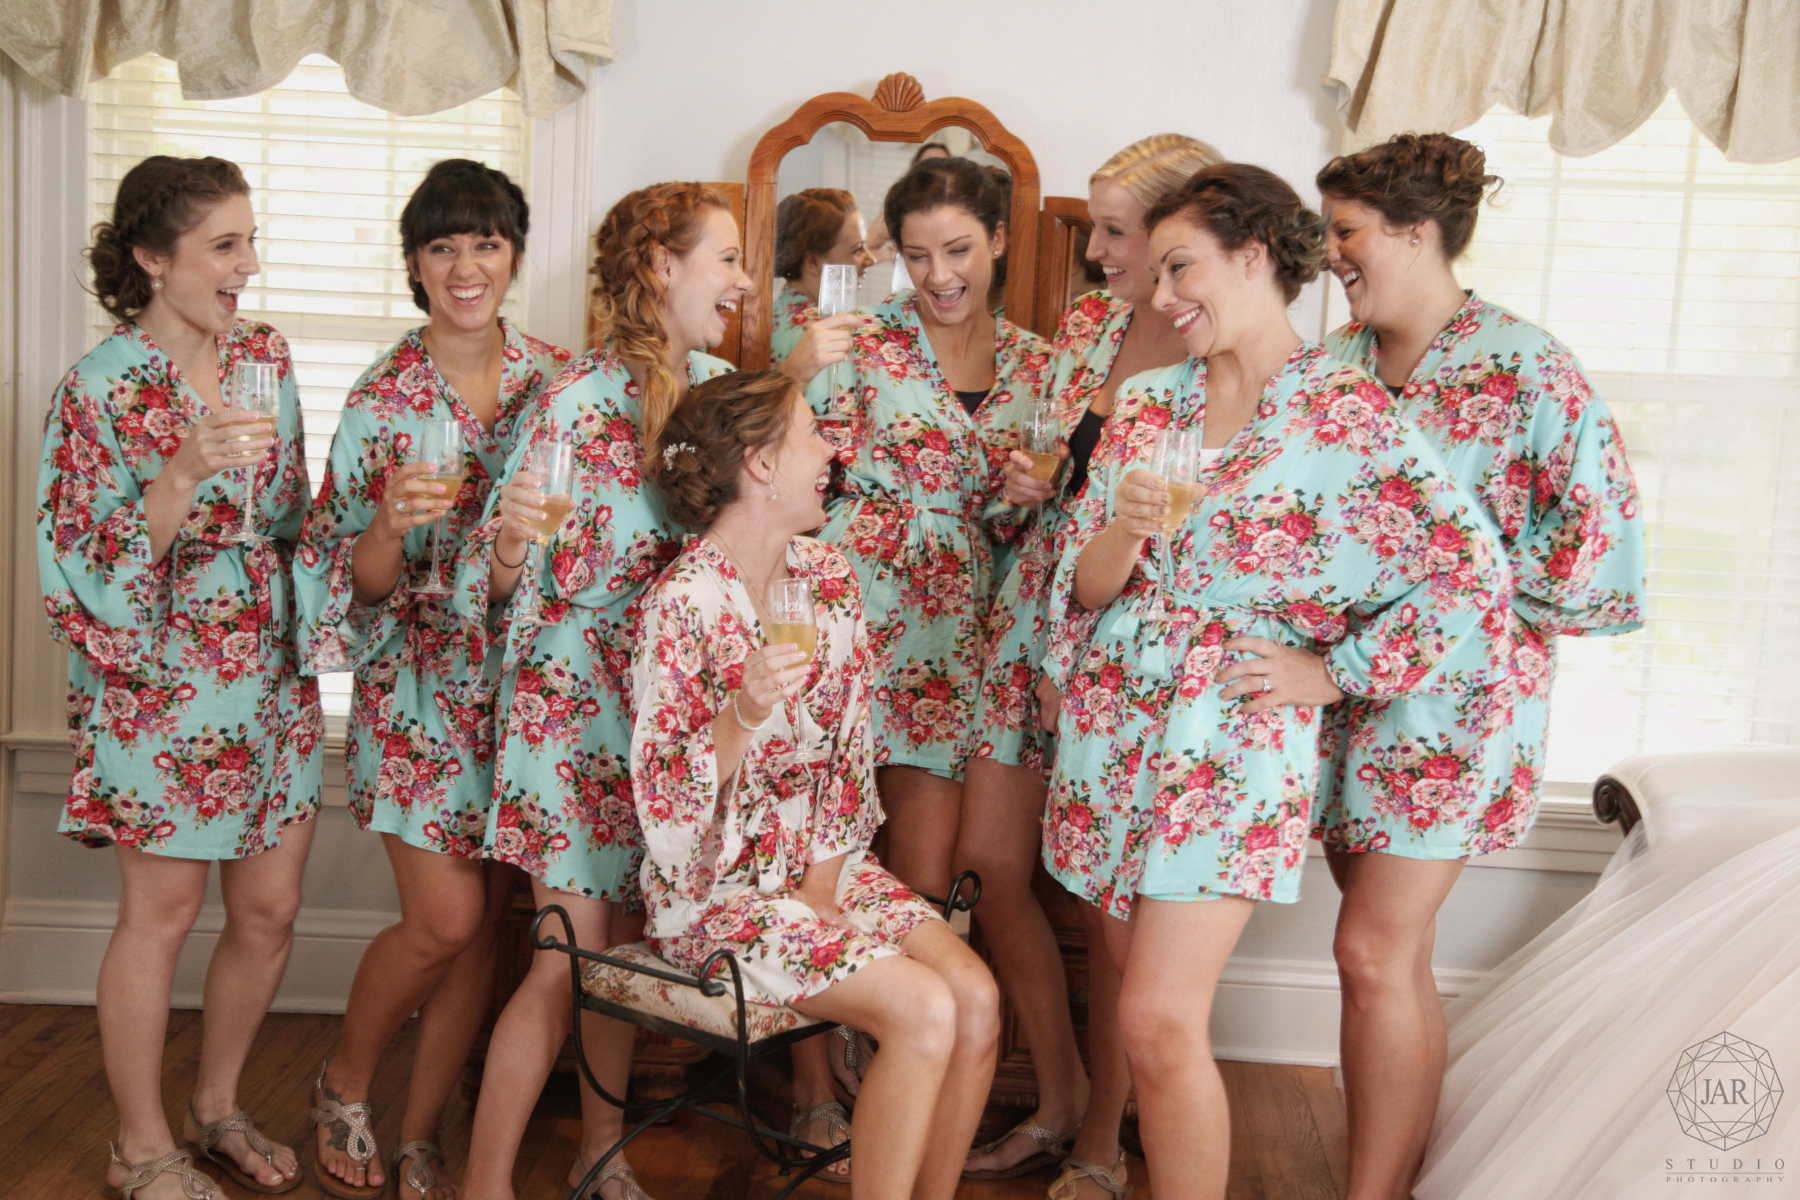 Floral bridesmaids robes fun bride Orlando wedding photography